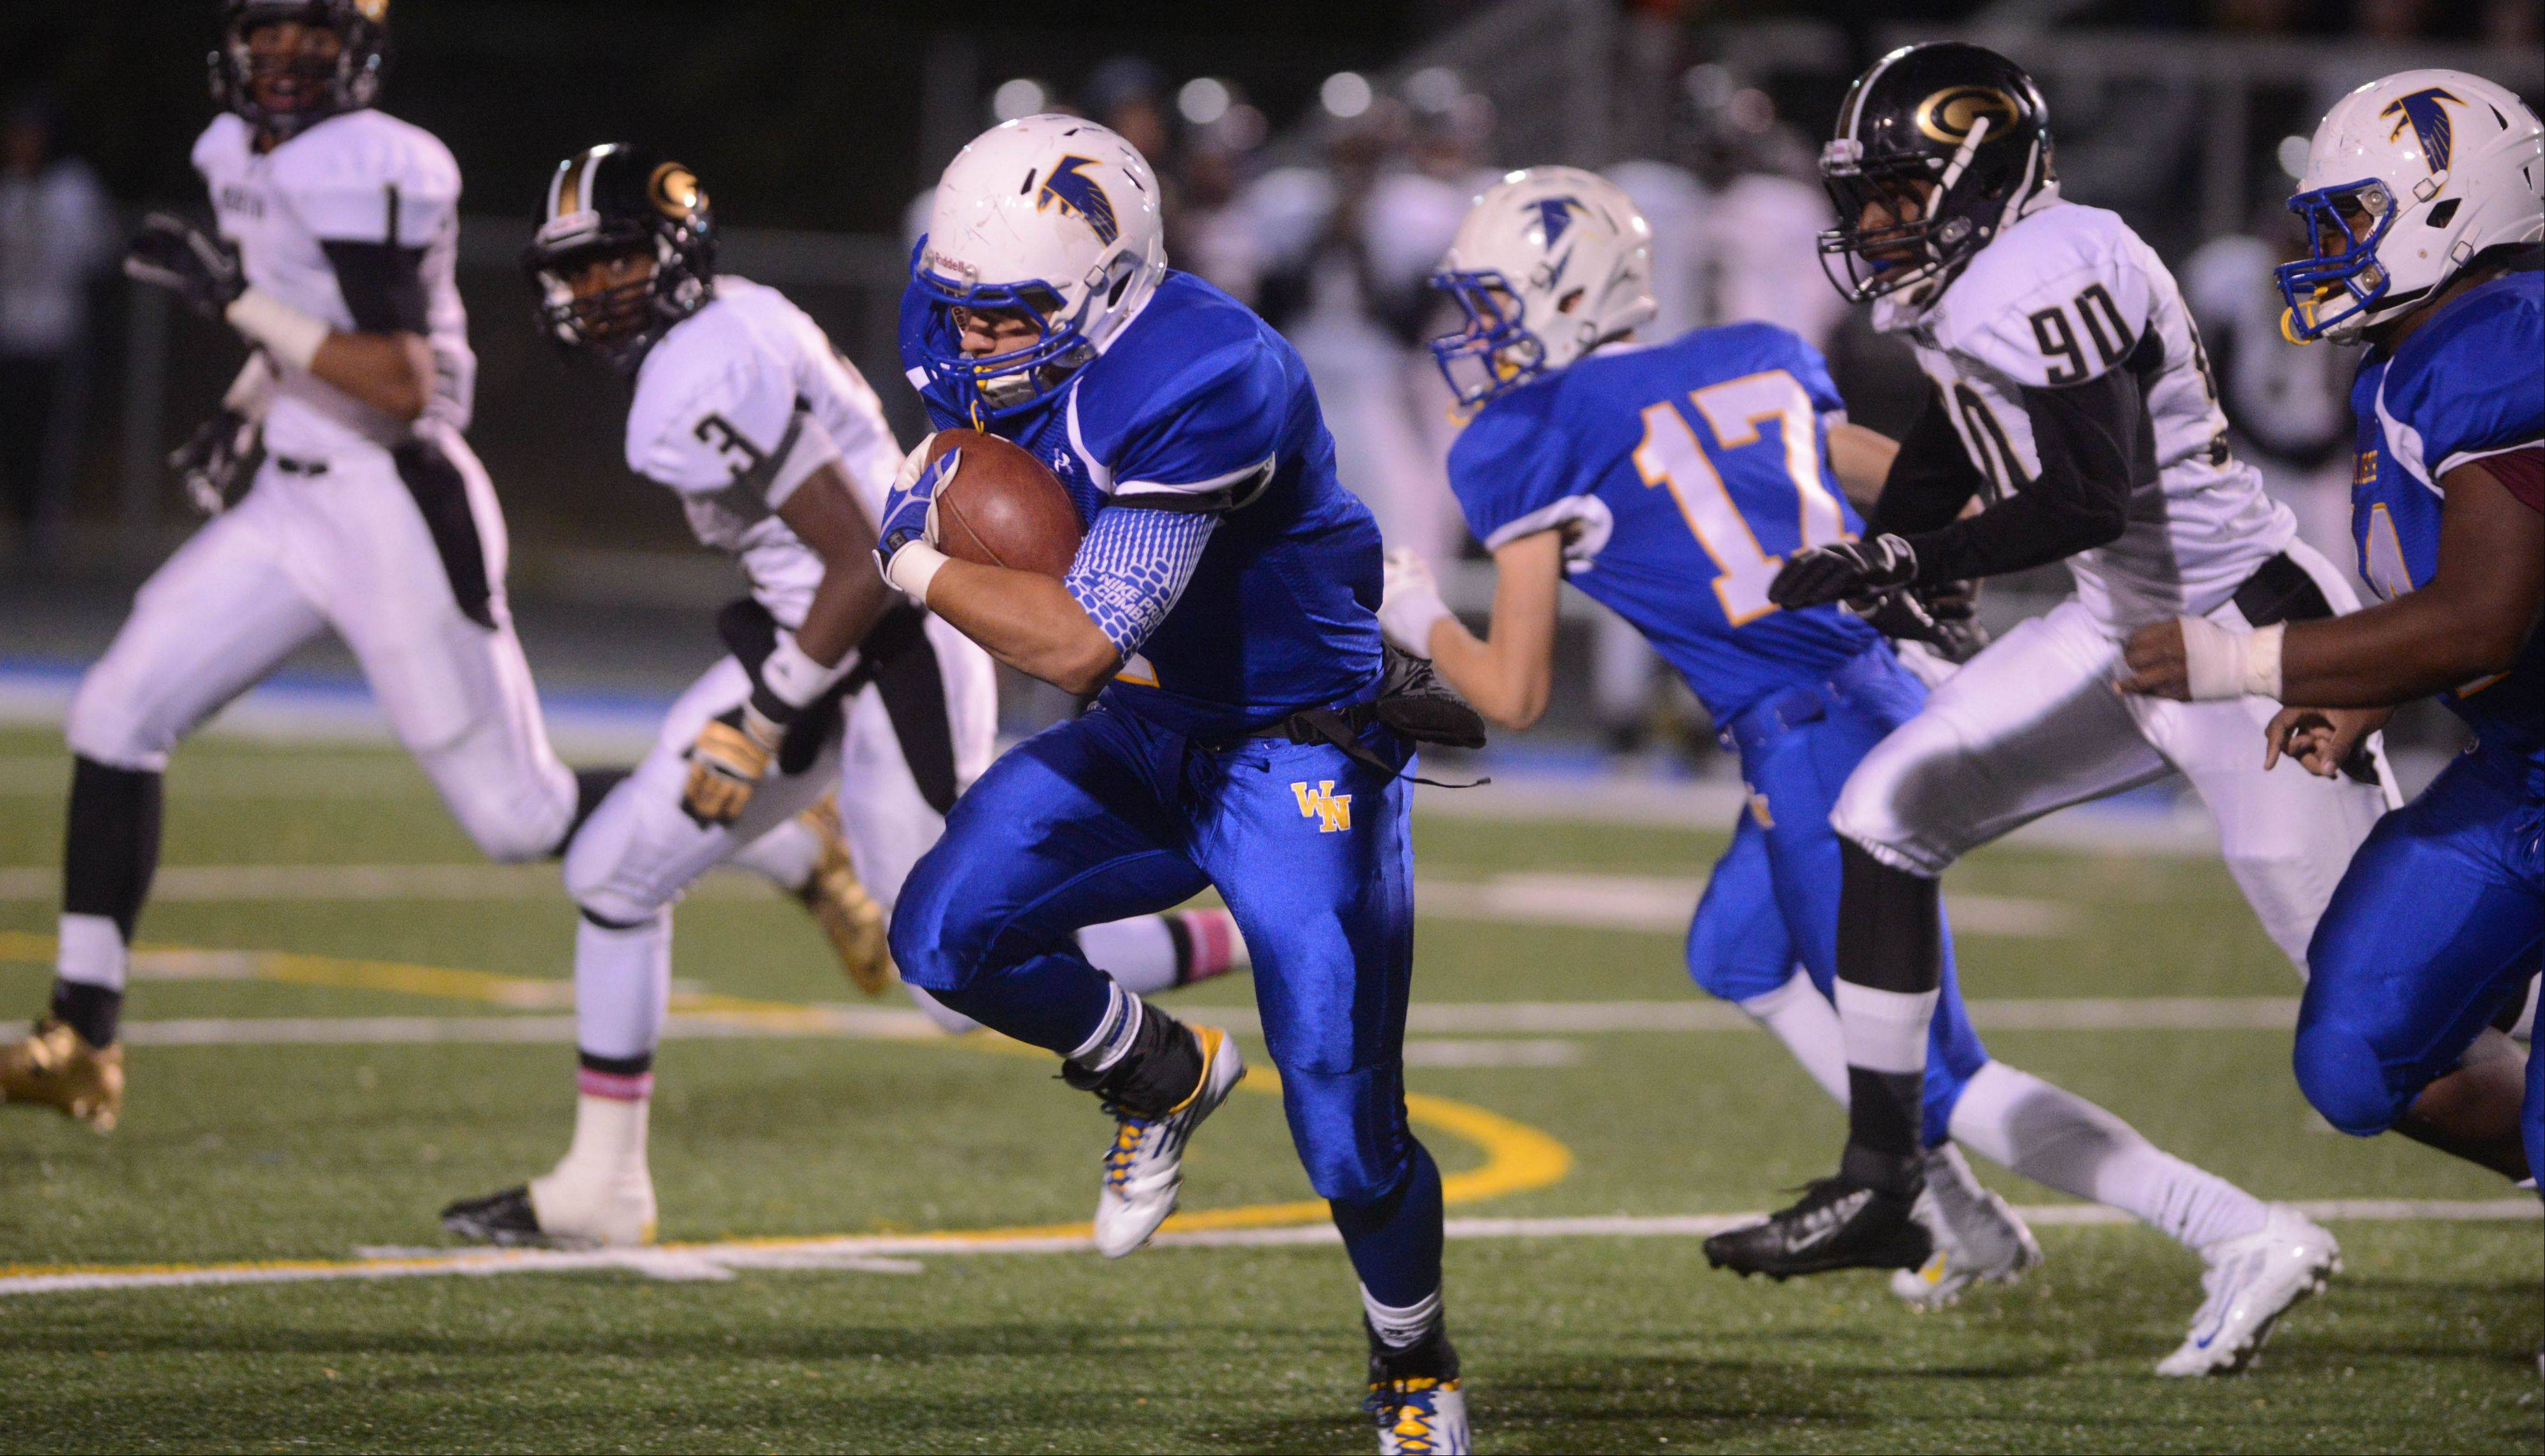 Dom Garza of Wheaton North runs the ball.